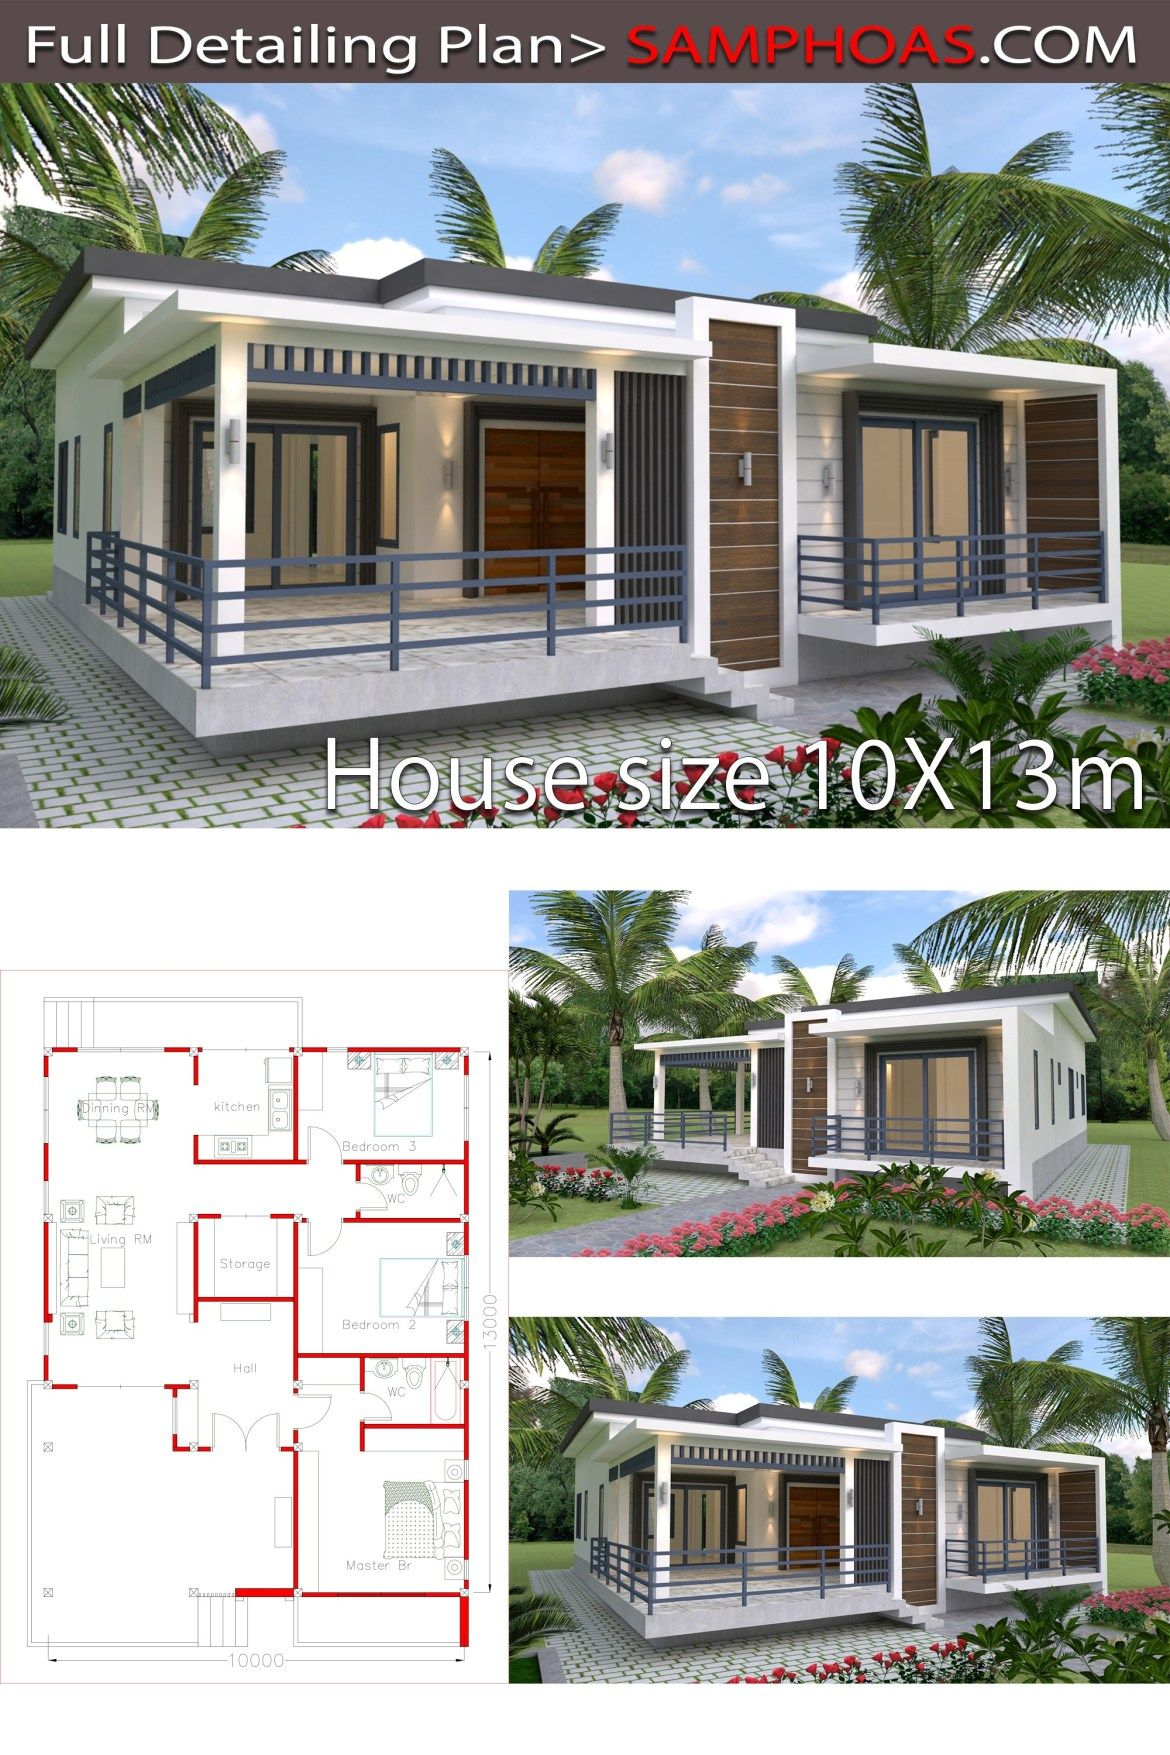 Sketchup Home Design Plan 10x13m Samphoas Plansearch Bungalow House Plans Little House Plans Bungalow House Design